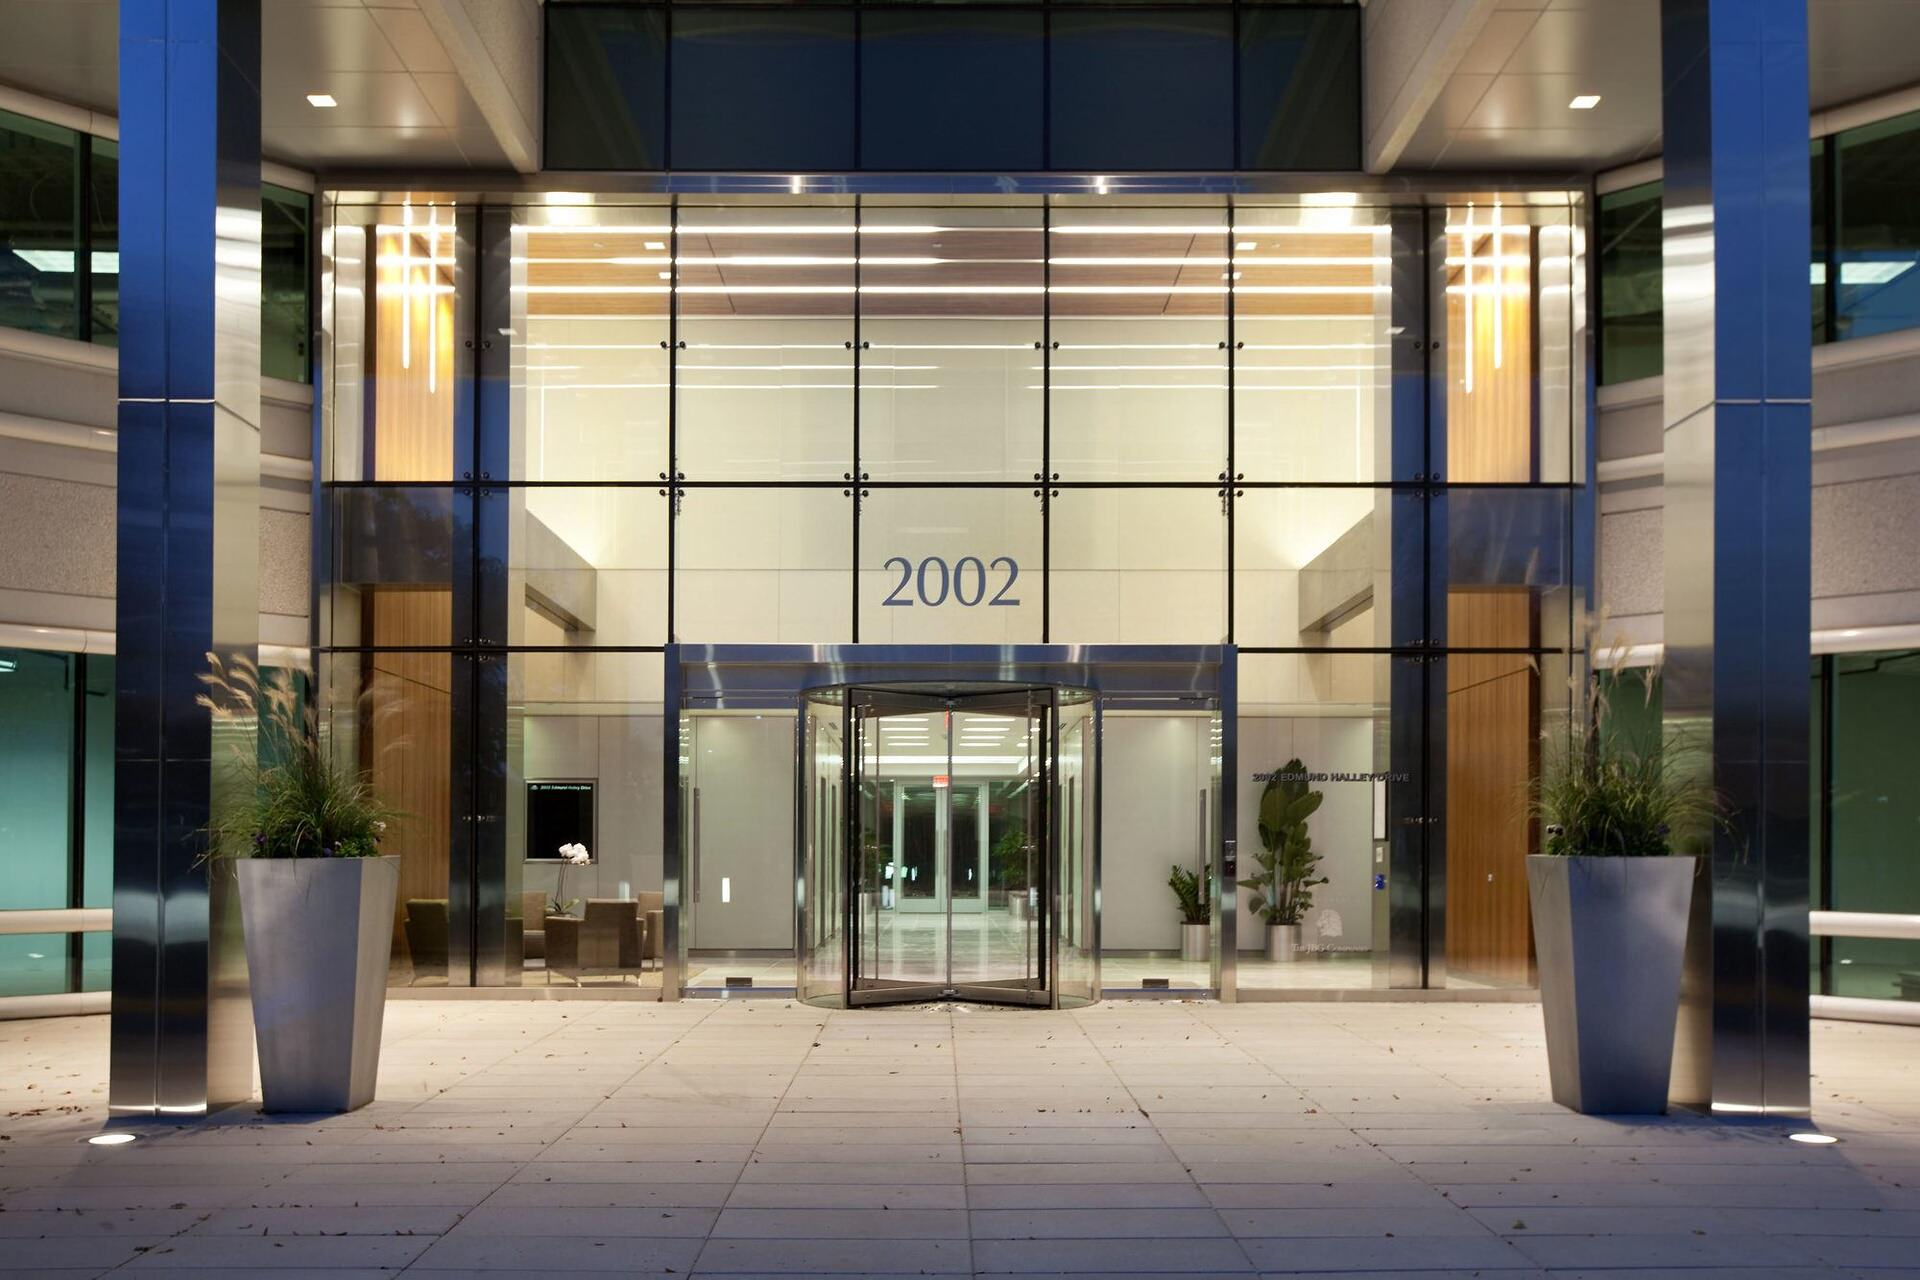 A Large Building Constructed on the year 2002  with a large glass window and revolving glass door seen